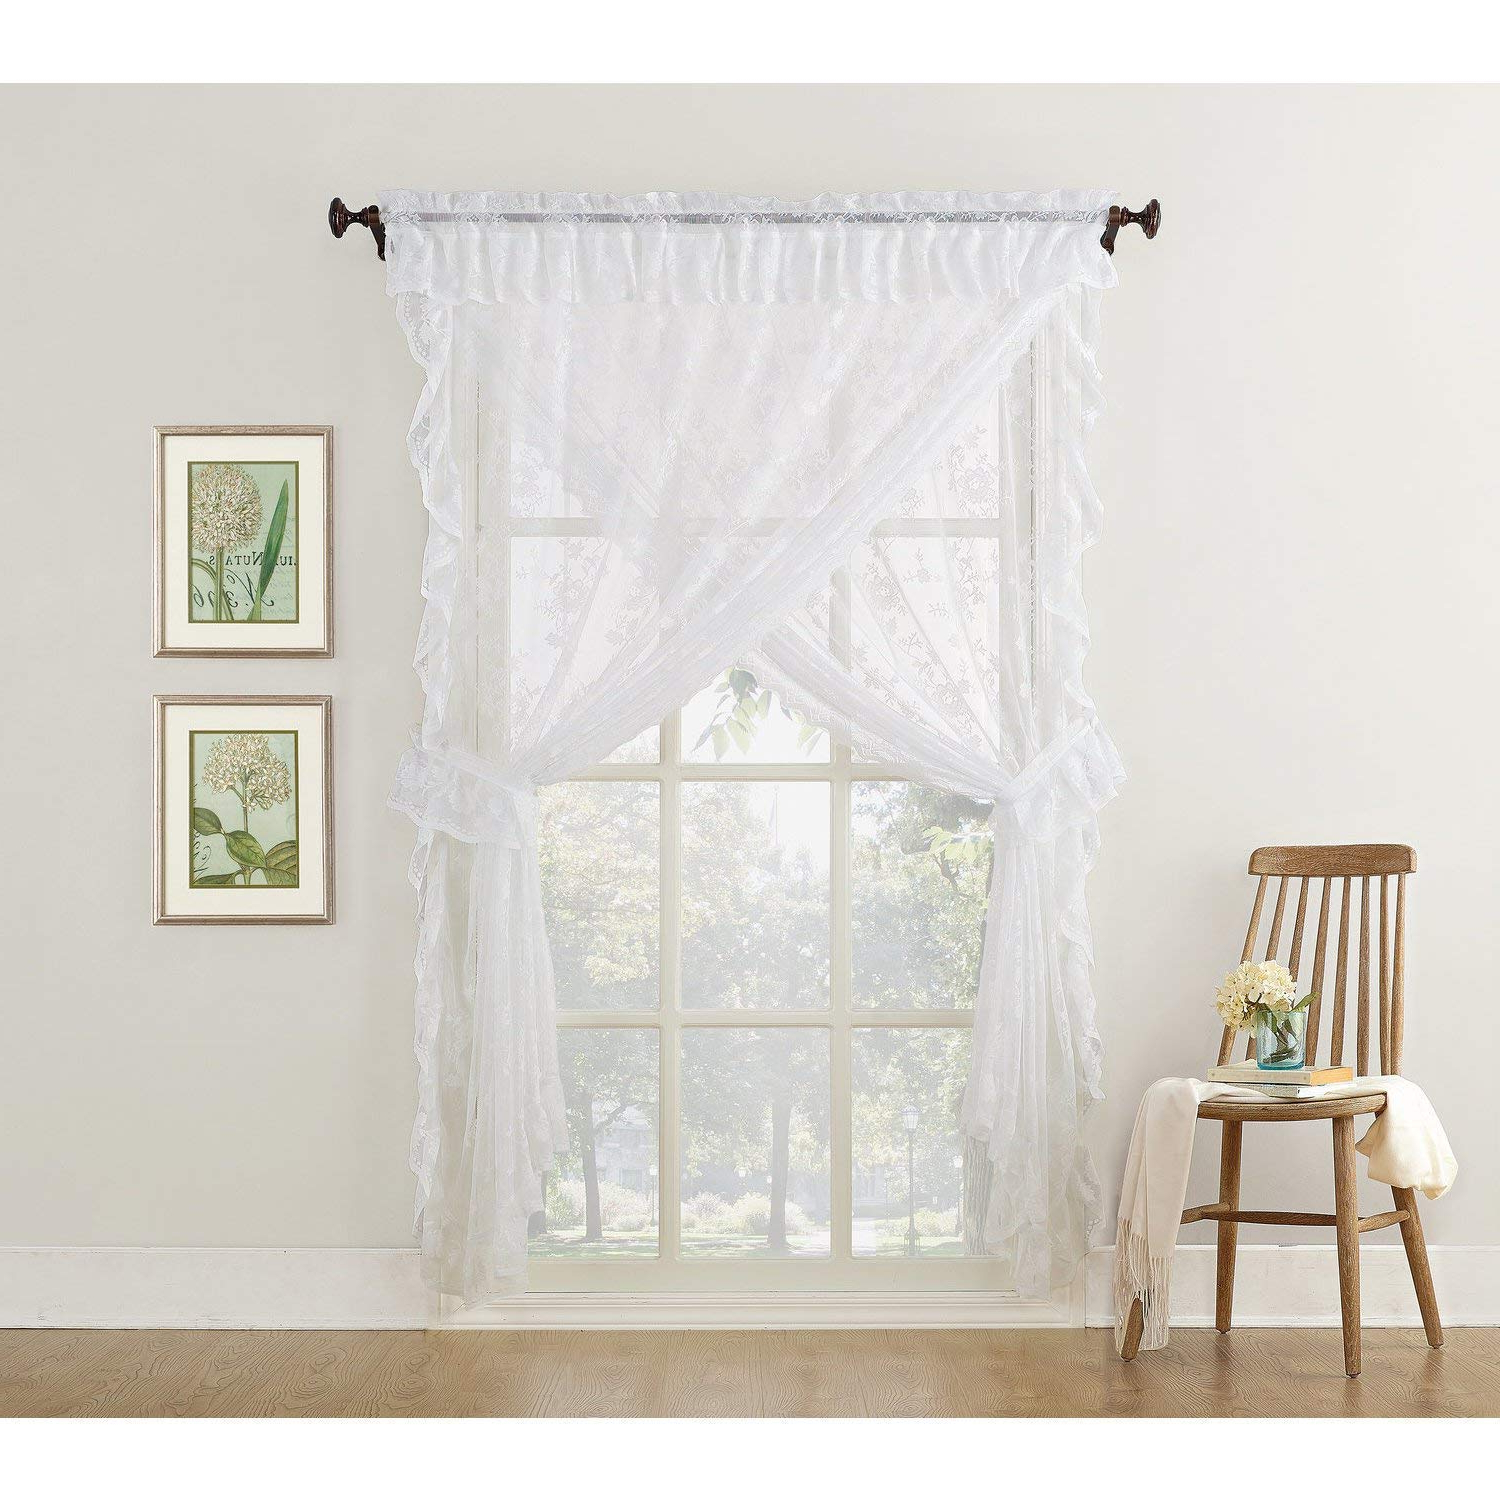 Amazon: Misc 5 Piece White Priscilla Curtains, Sheer Throughout Most Up To Date Elegant White Priscilla Lace Kitchen Curtain Pieces (View 6 of 20)